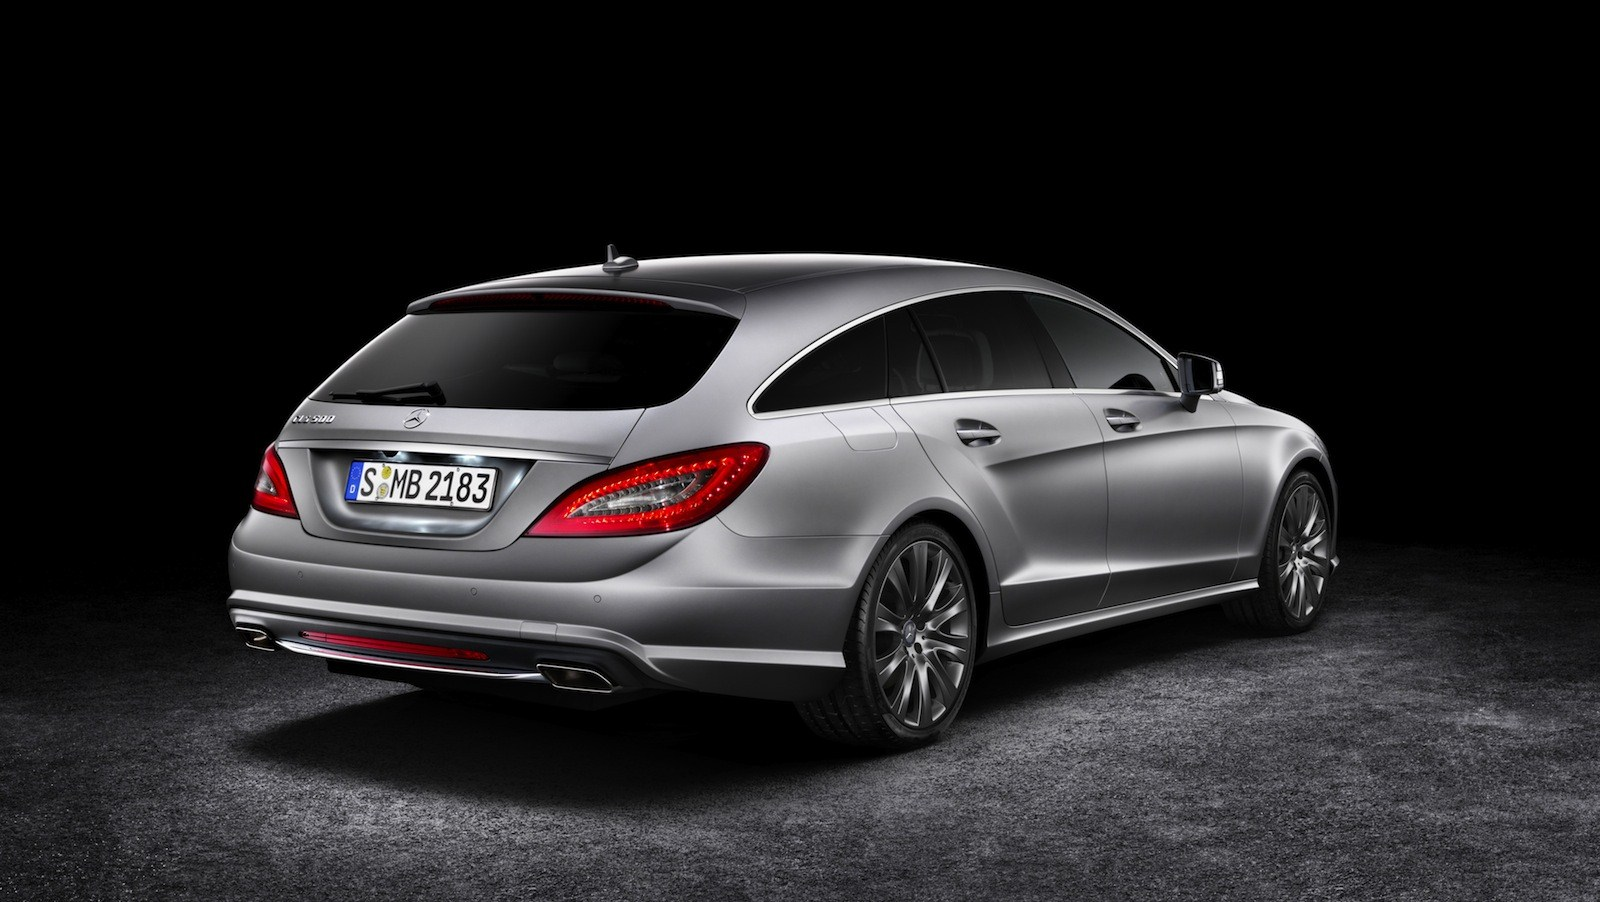 Mercedes Cla Shooting Brake Car Prices Pictures Prices